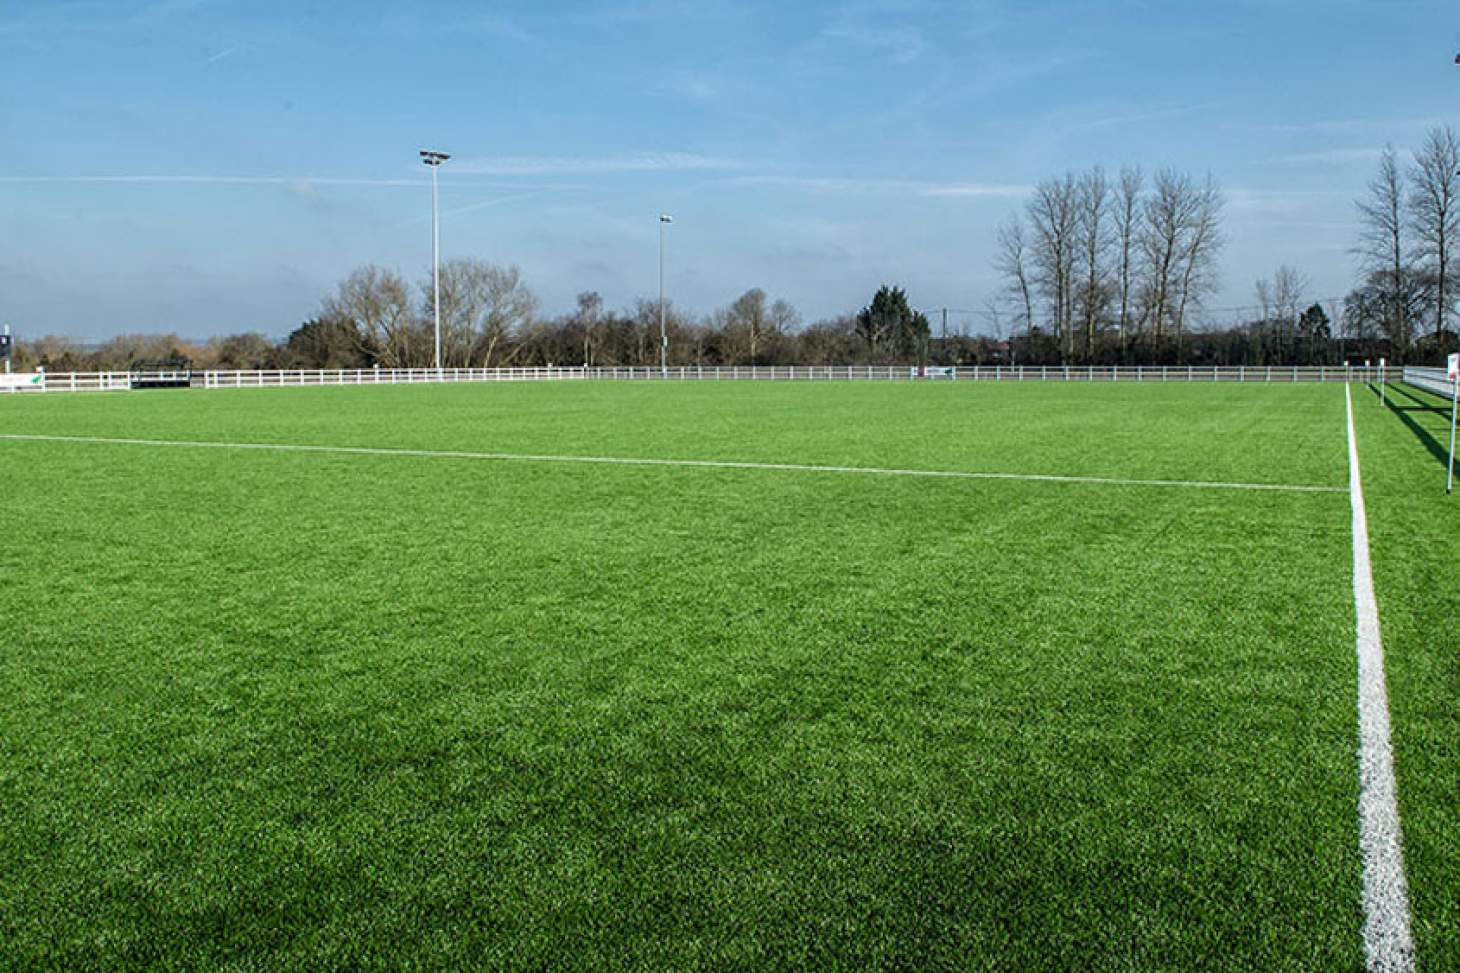 PlayFootball Chiswick 8 a side | 3G Astroturf football pitch